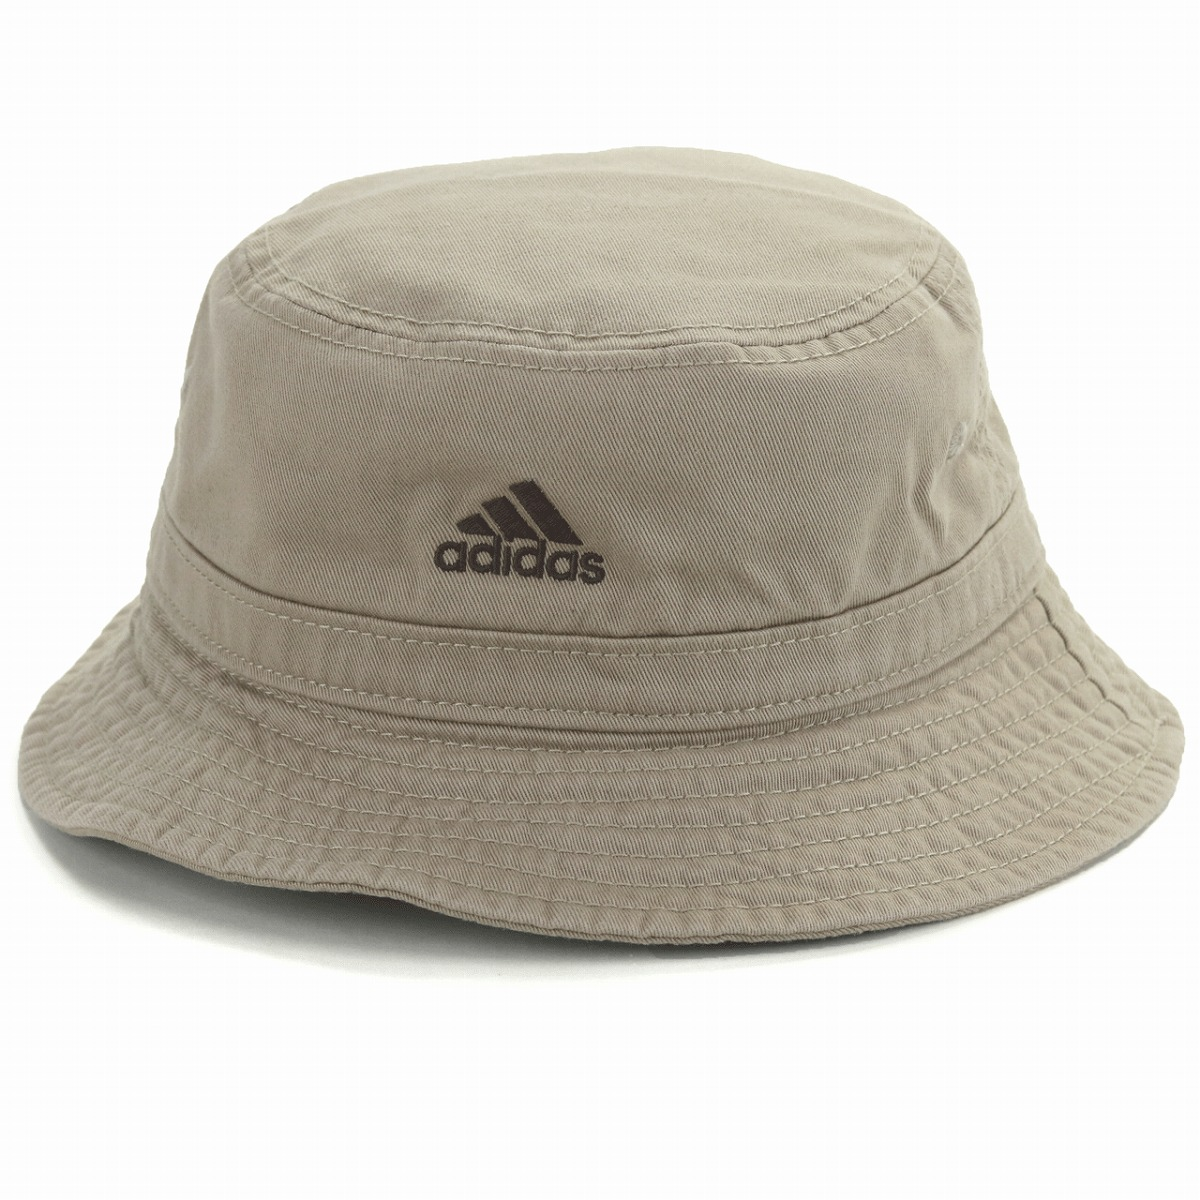 97621838f59 shop adidas originals mens reversible trefoil bucket hat osfm fishermans  bnwt sun eec68 efc81  reduced safari hat men adidas hat adidas sakha re hat  awning ...